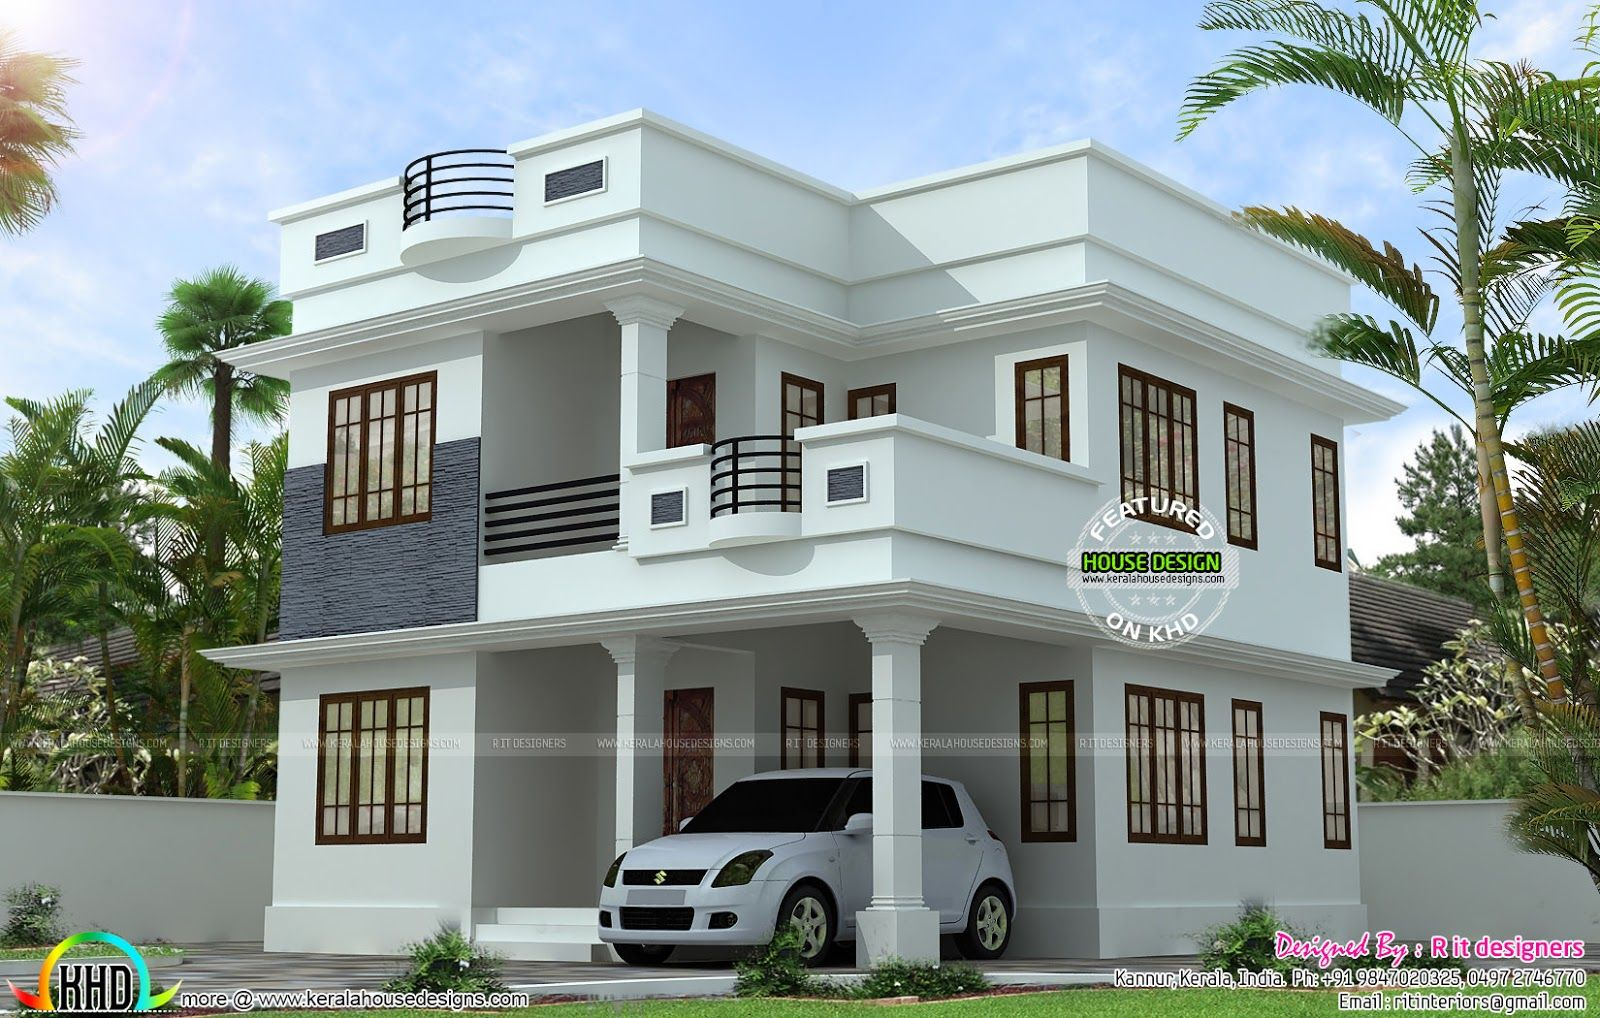 neat and simple small house plan kerala home design and floor plans - Small Home Designs